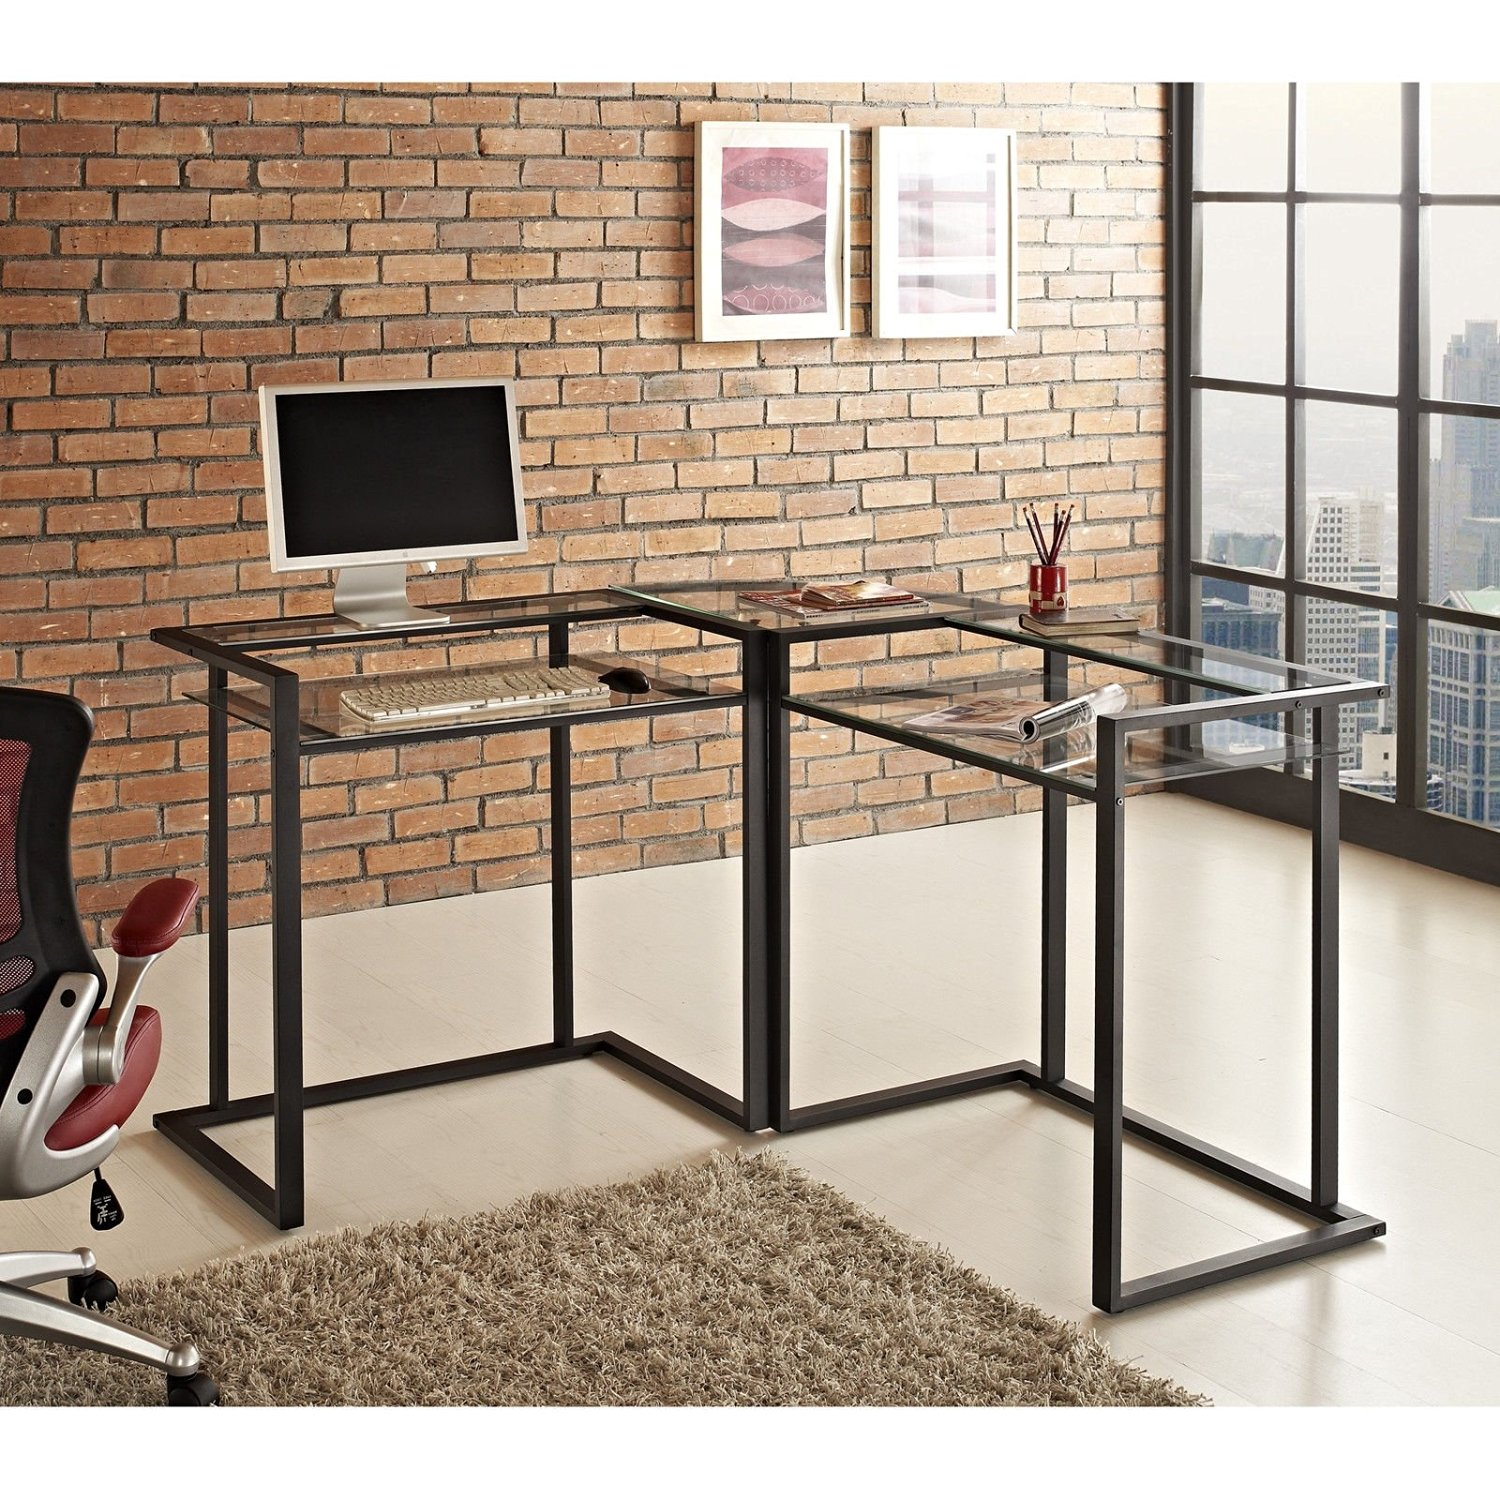 Glass and Metal Corner Computer Desk; L Shaped Computer Desk; This Clear Glass Corner Desk Has a Strong Black Steel Frame; a Glass Computer Desk with Shelves,style, and Function; Modern Computer Desk;